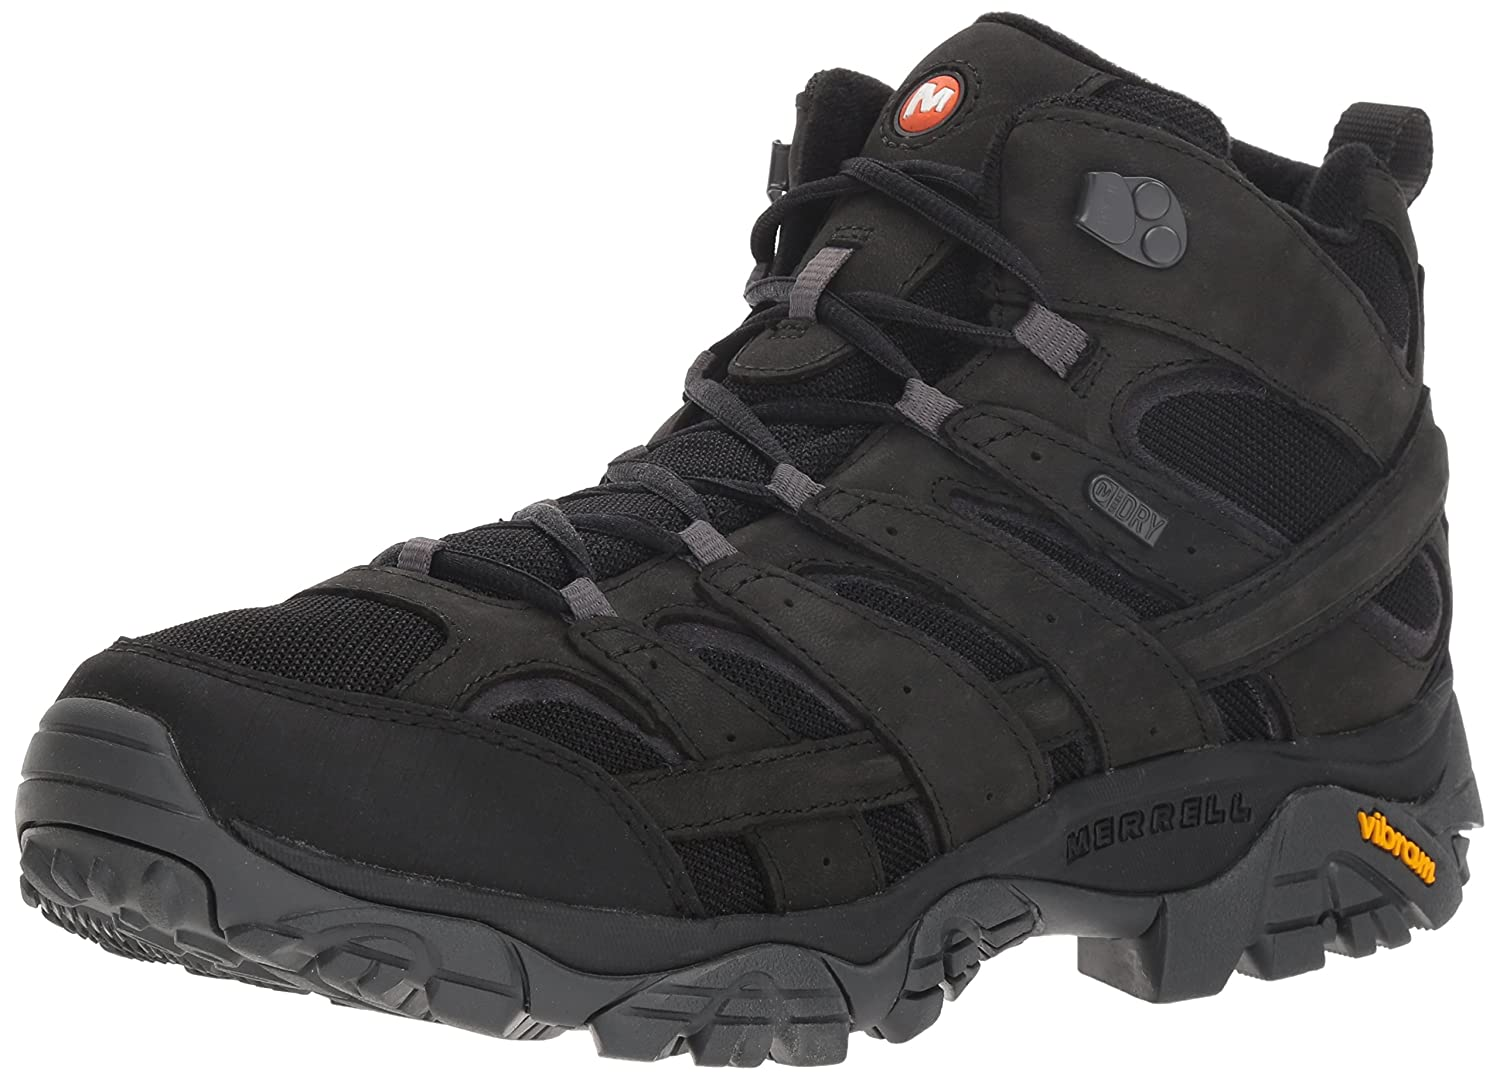 Merrell Men's Moab 2 Smooth Mid Waterproof Hiking Stiefel,